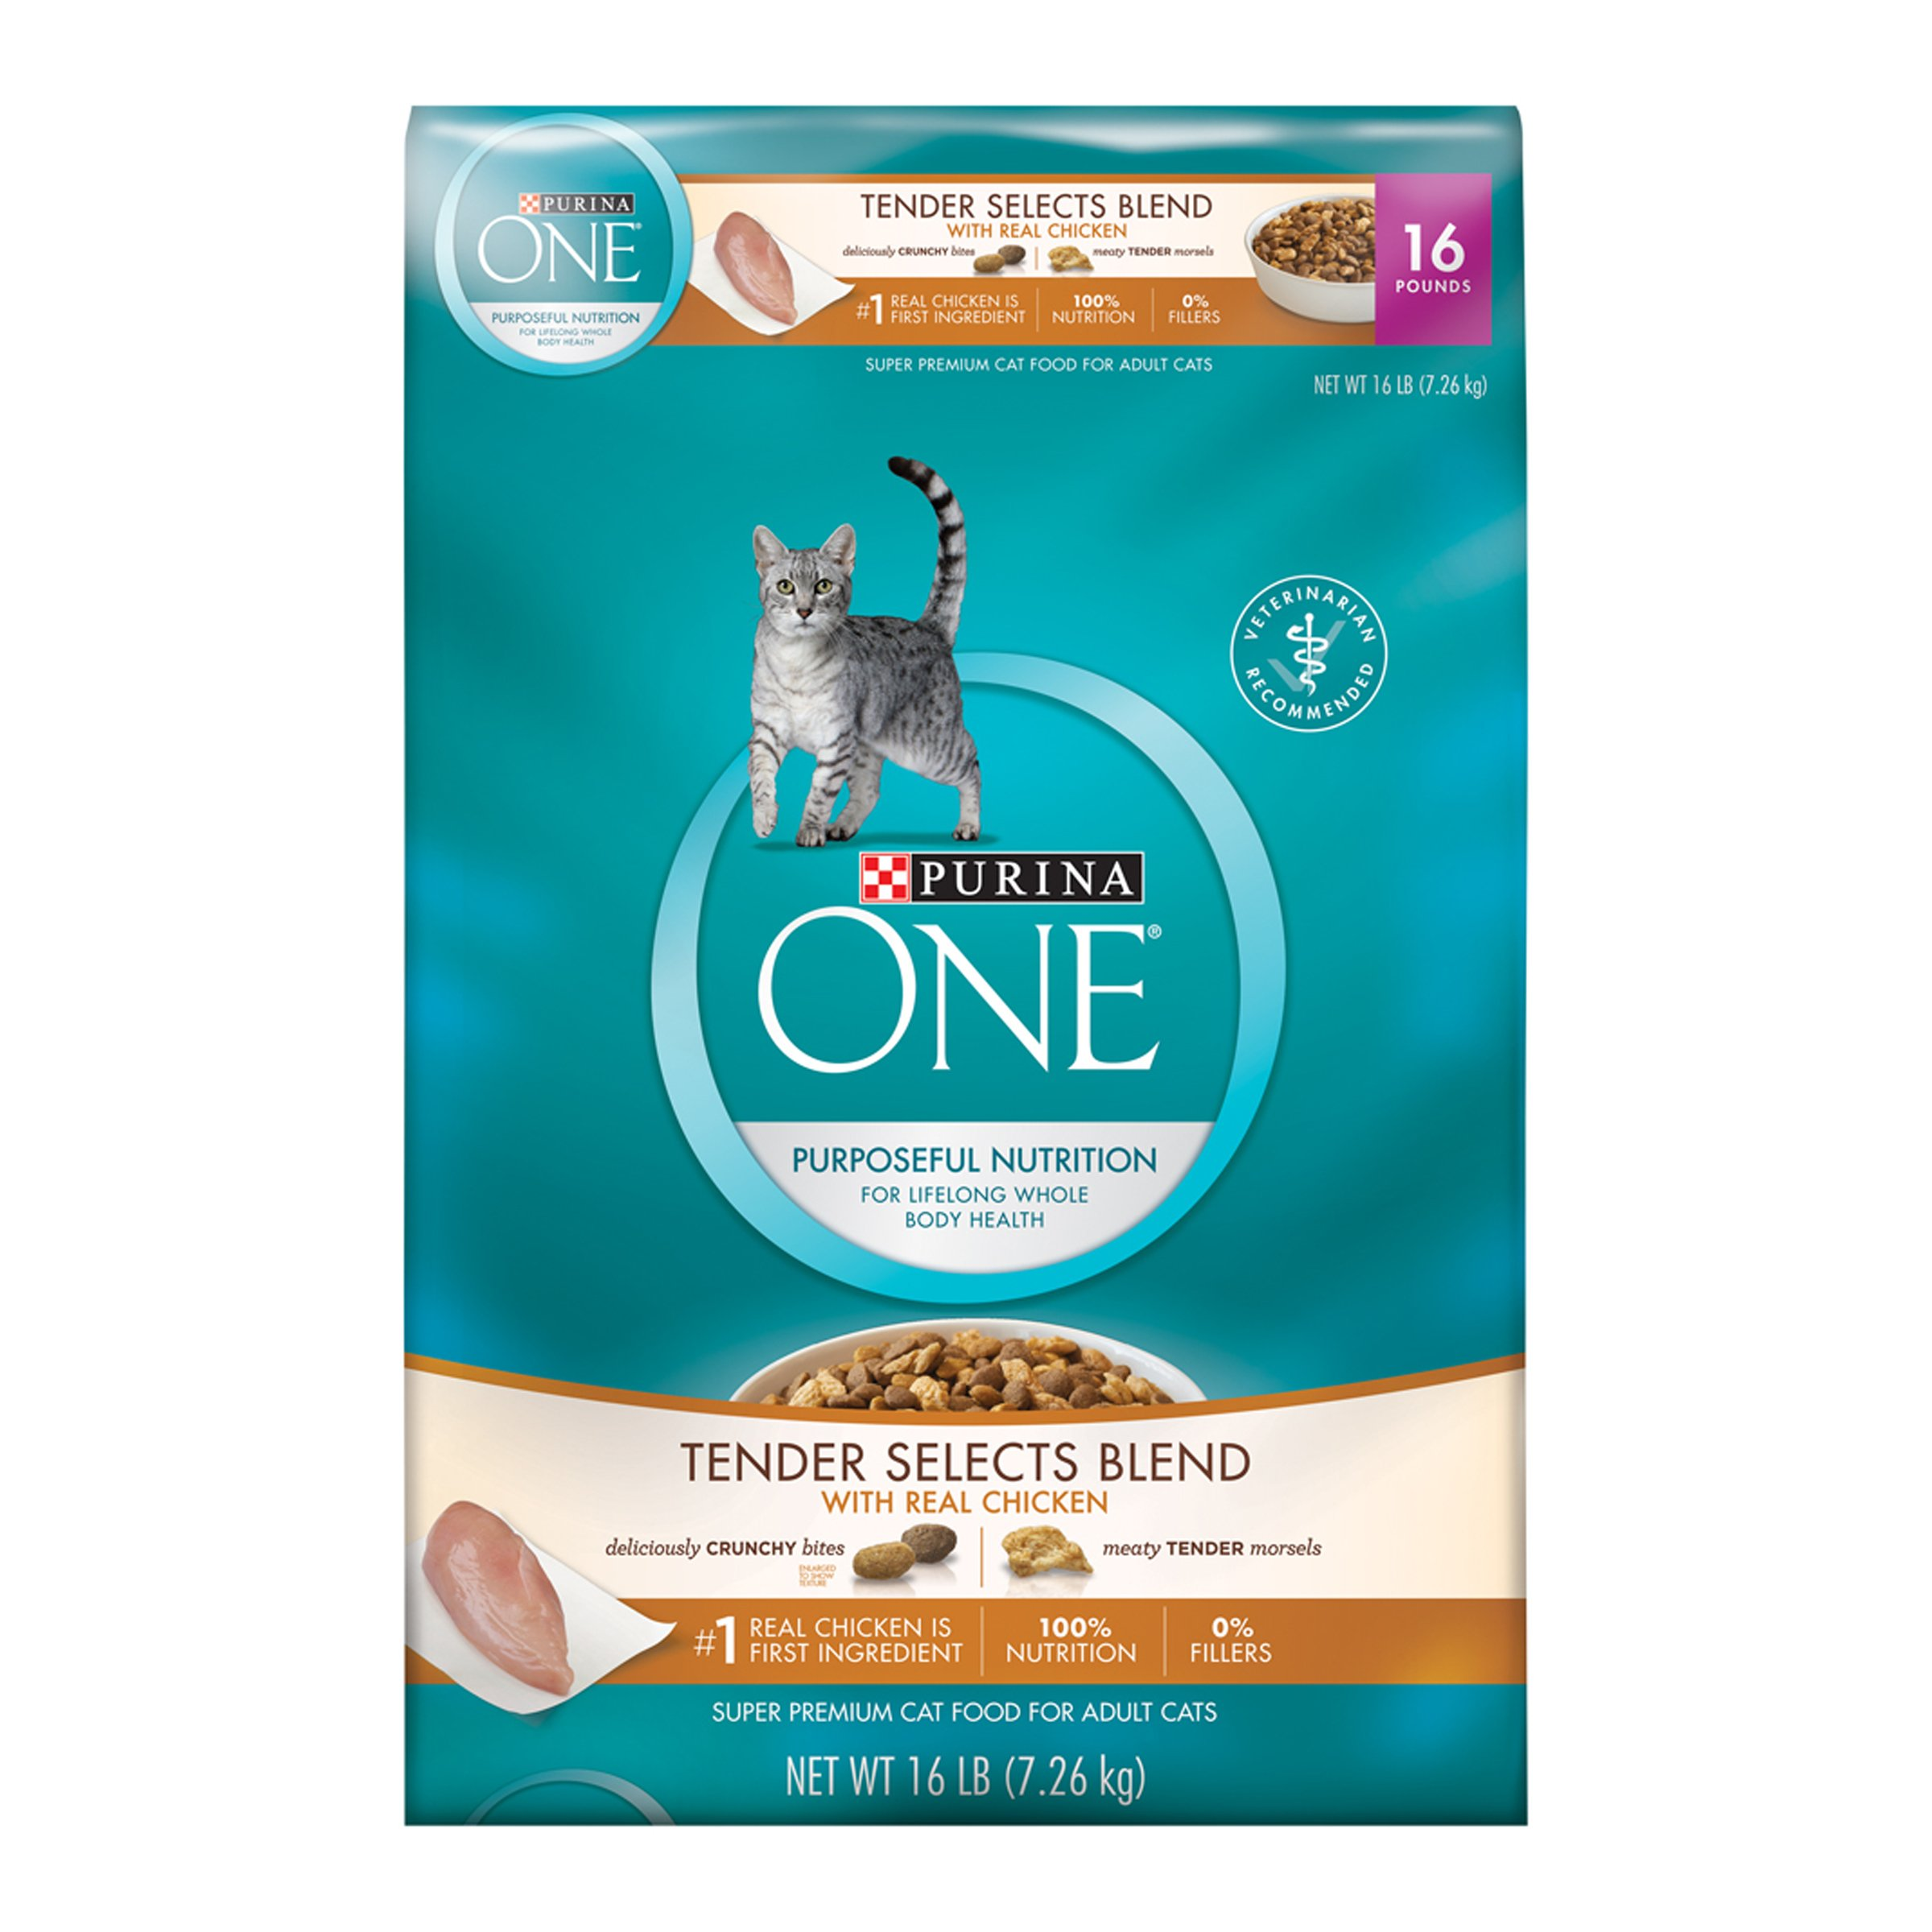 Purina ONE Tender Selects Blend With Real Chicken Dry Cat Food 16 lb. Bag